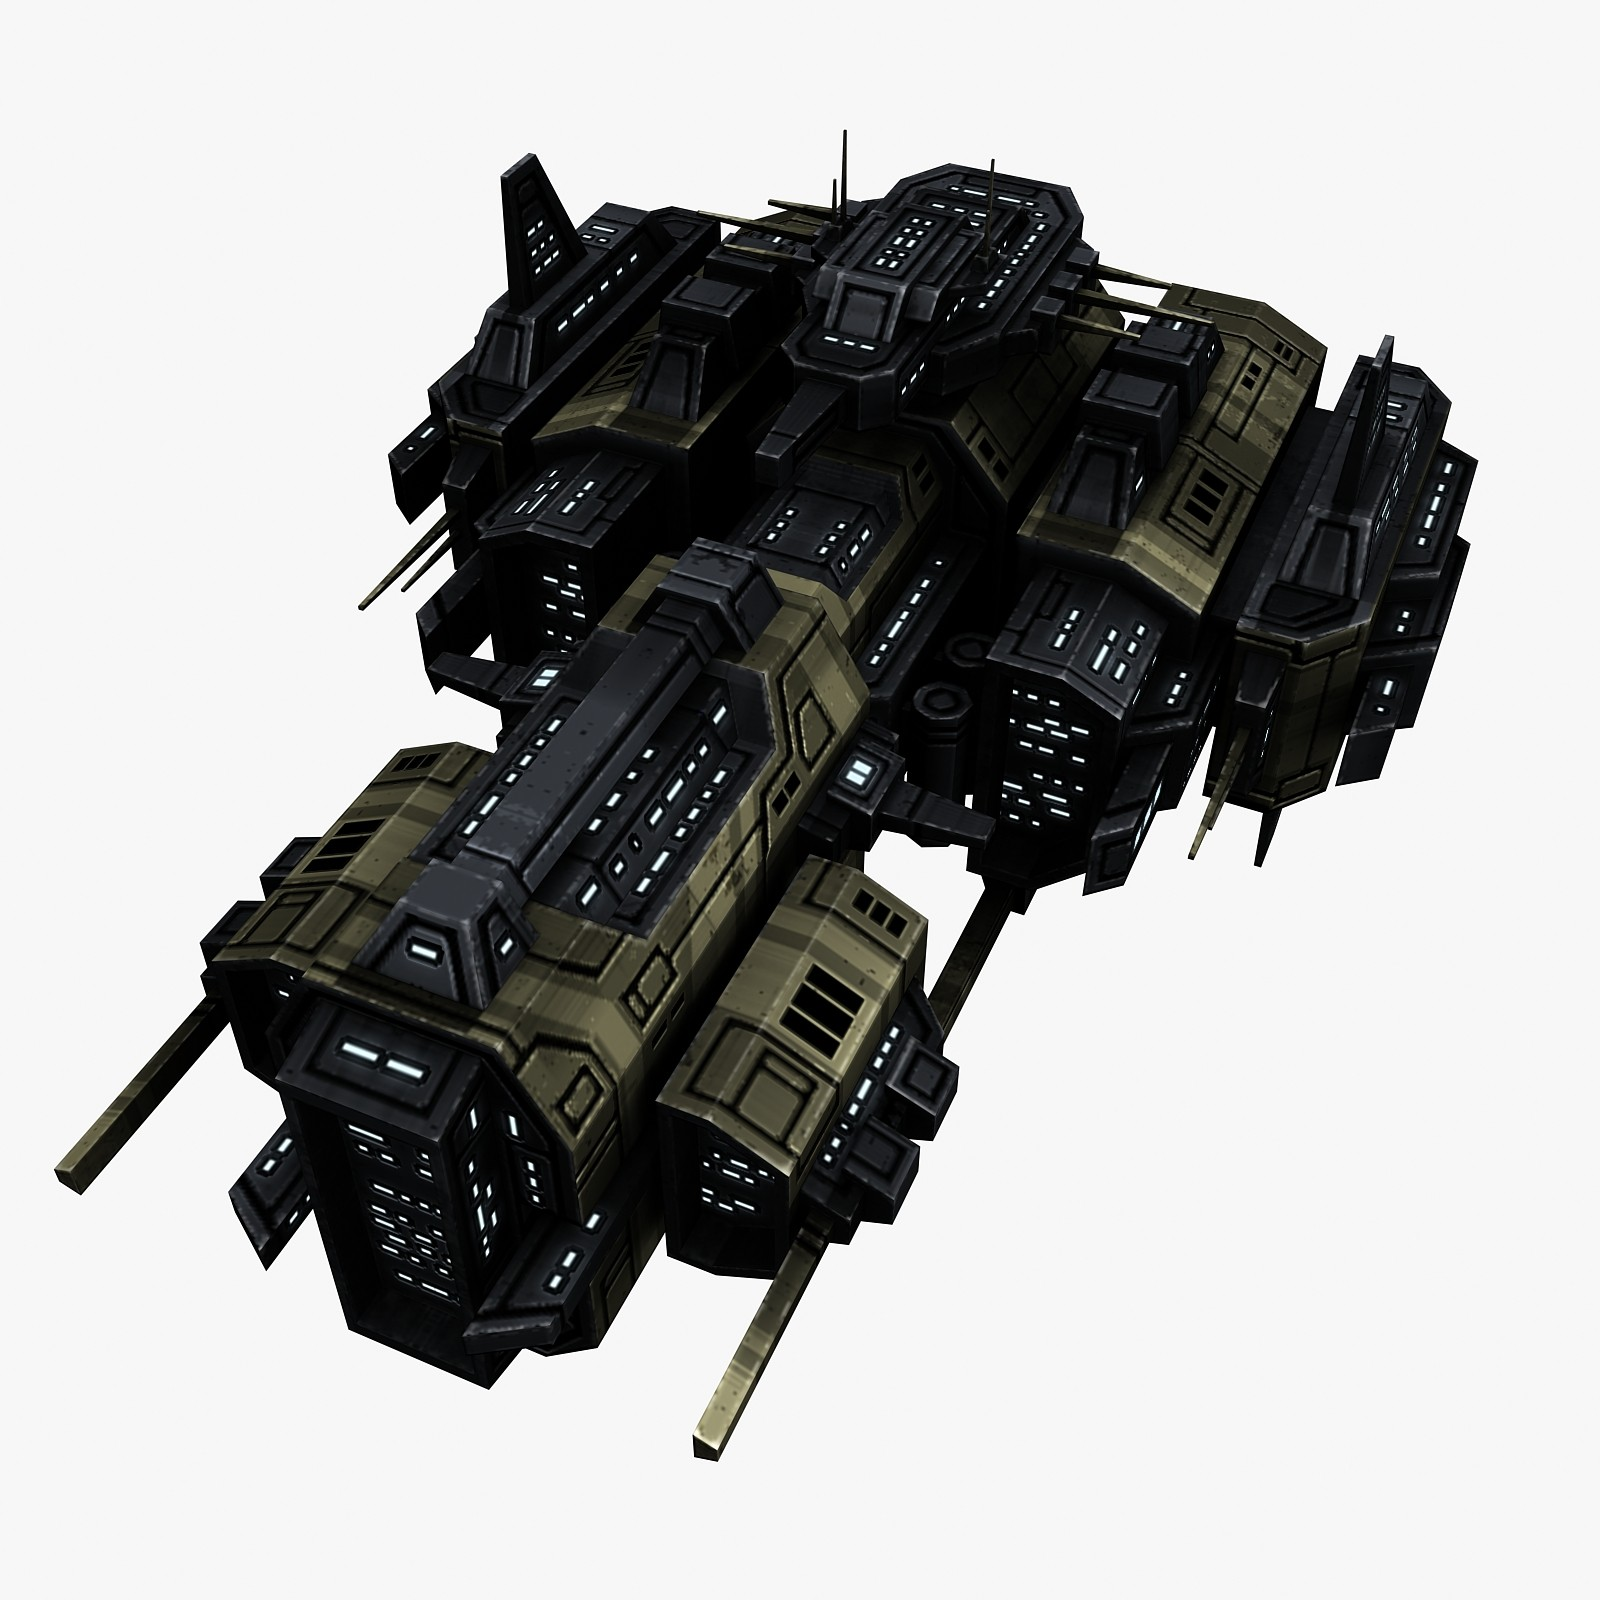 upgraded_civilian_transport_spaceship_2_preview_1.jpg